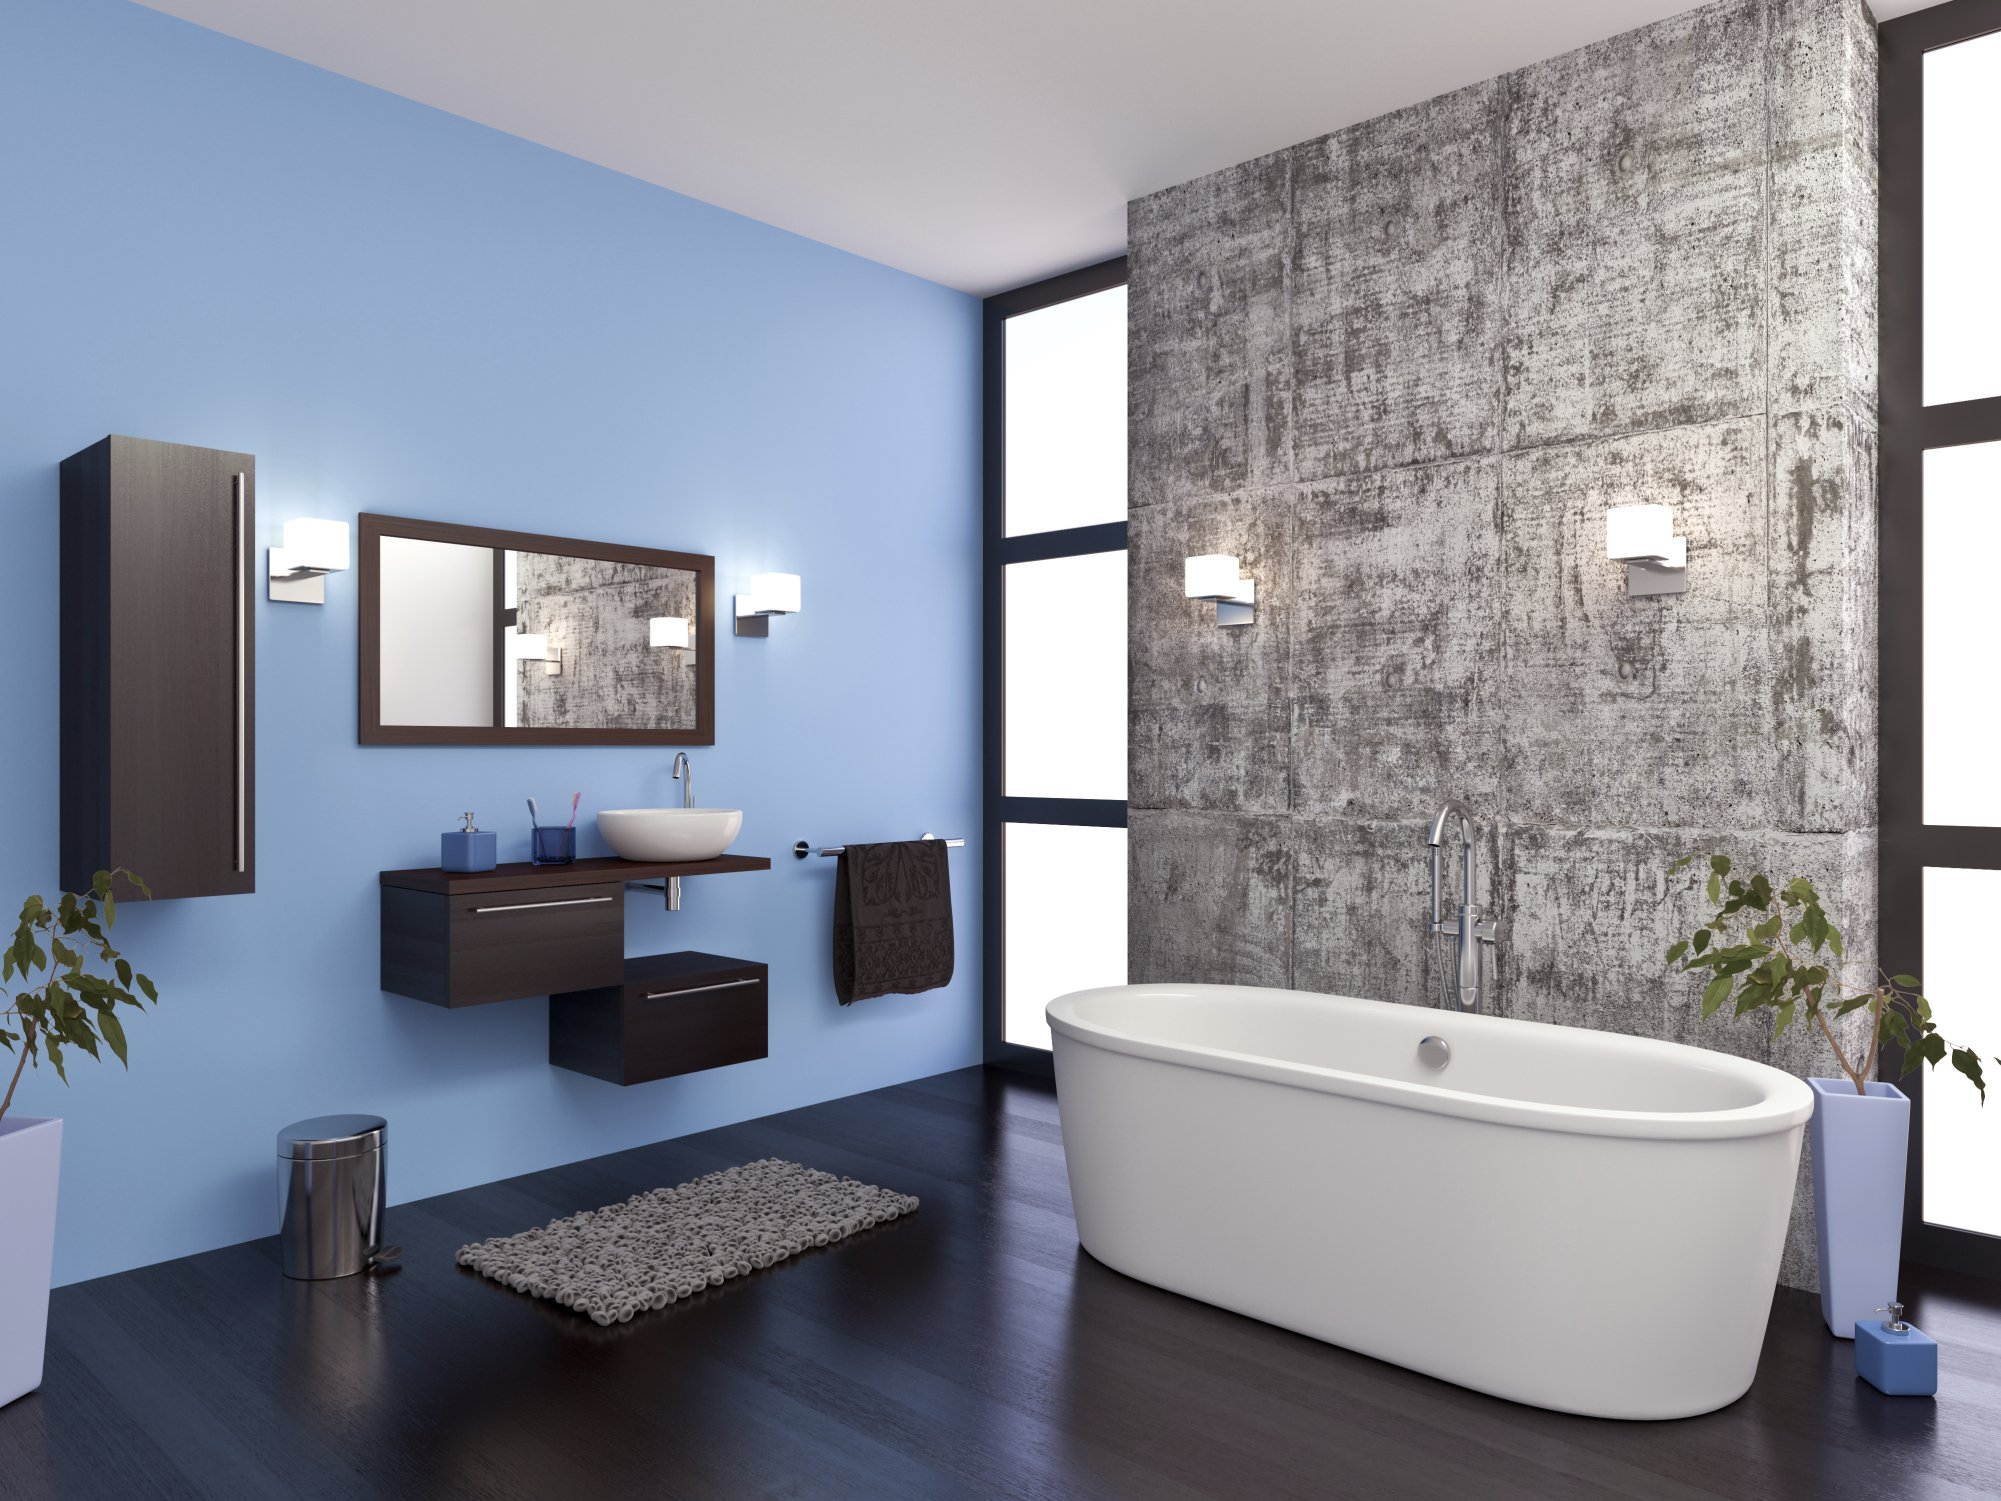 photos sofa shower inspirations for to chattanooga remodeling of remodelingtures size tn cost bathroom image full small ideas brilliant remodel